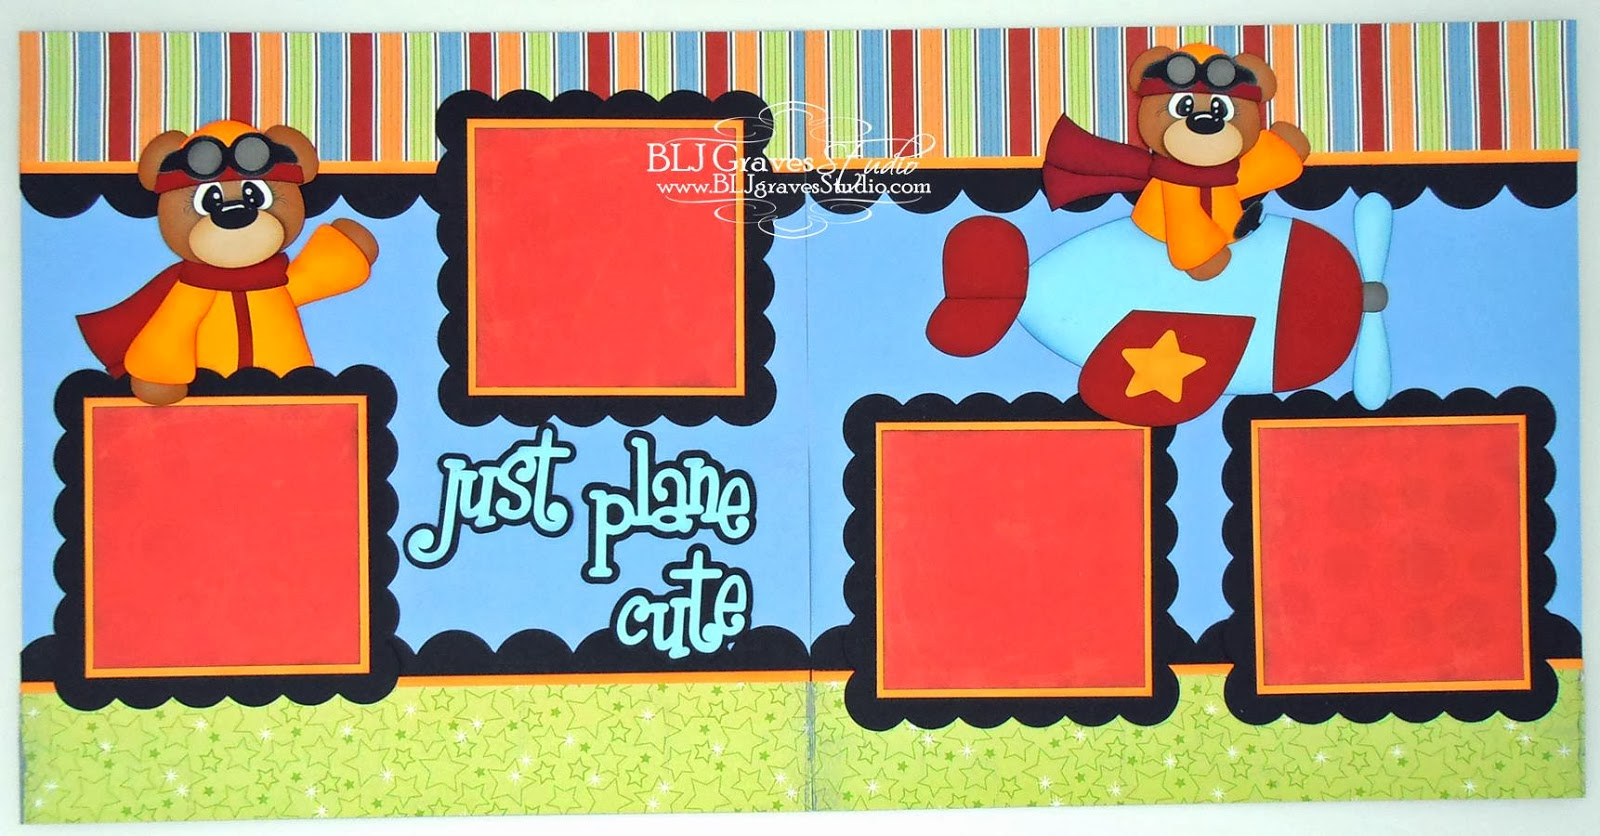 How to design scrapbook layouts - I Used Plane Cute Cutting File From Designs On Cloud 9 For This Layout